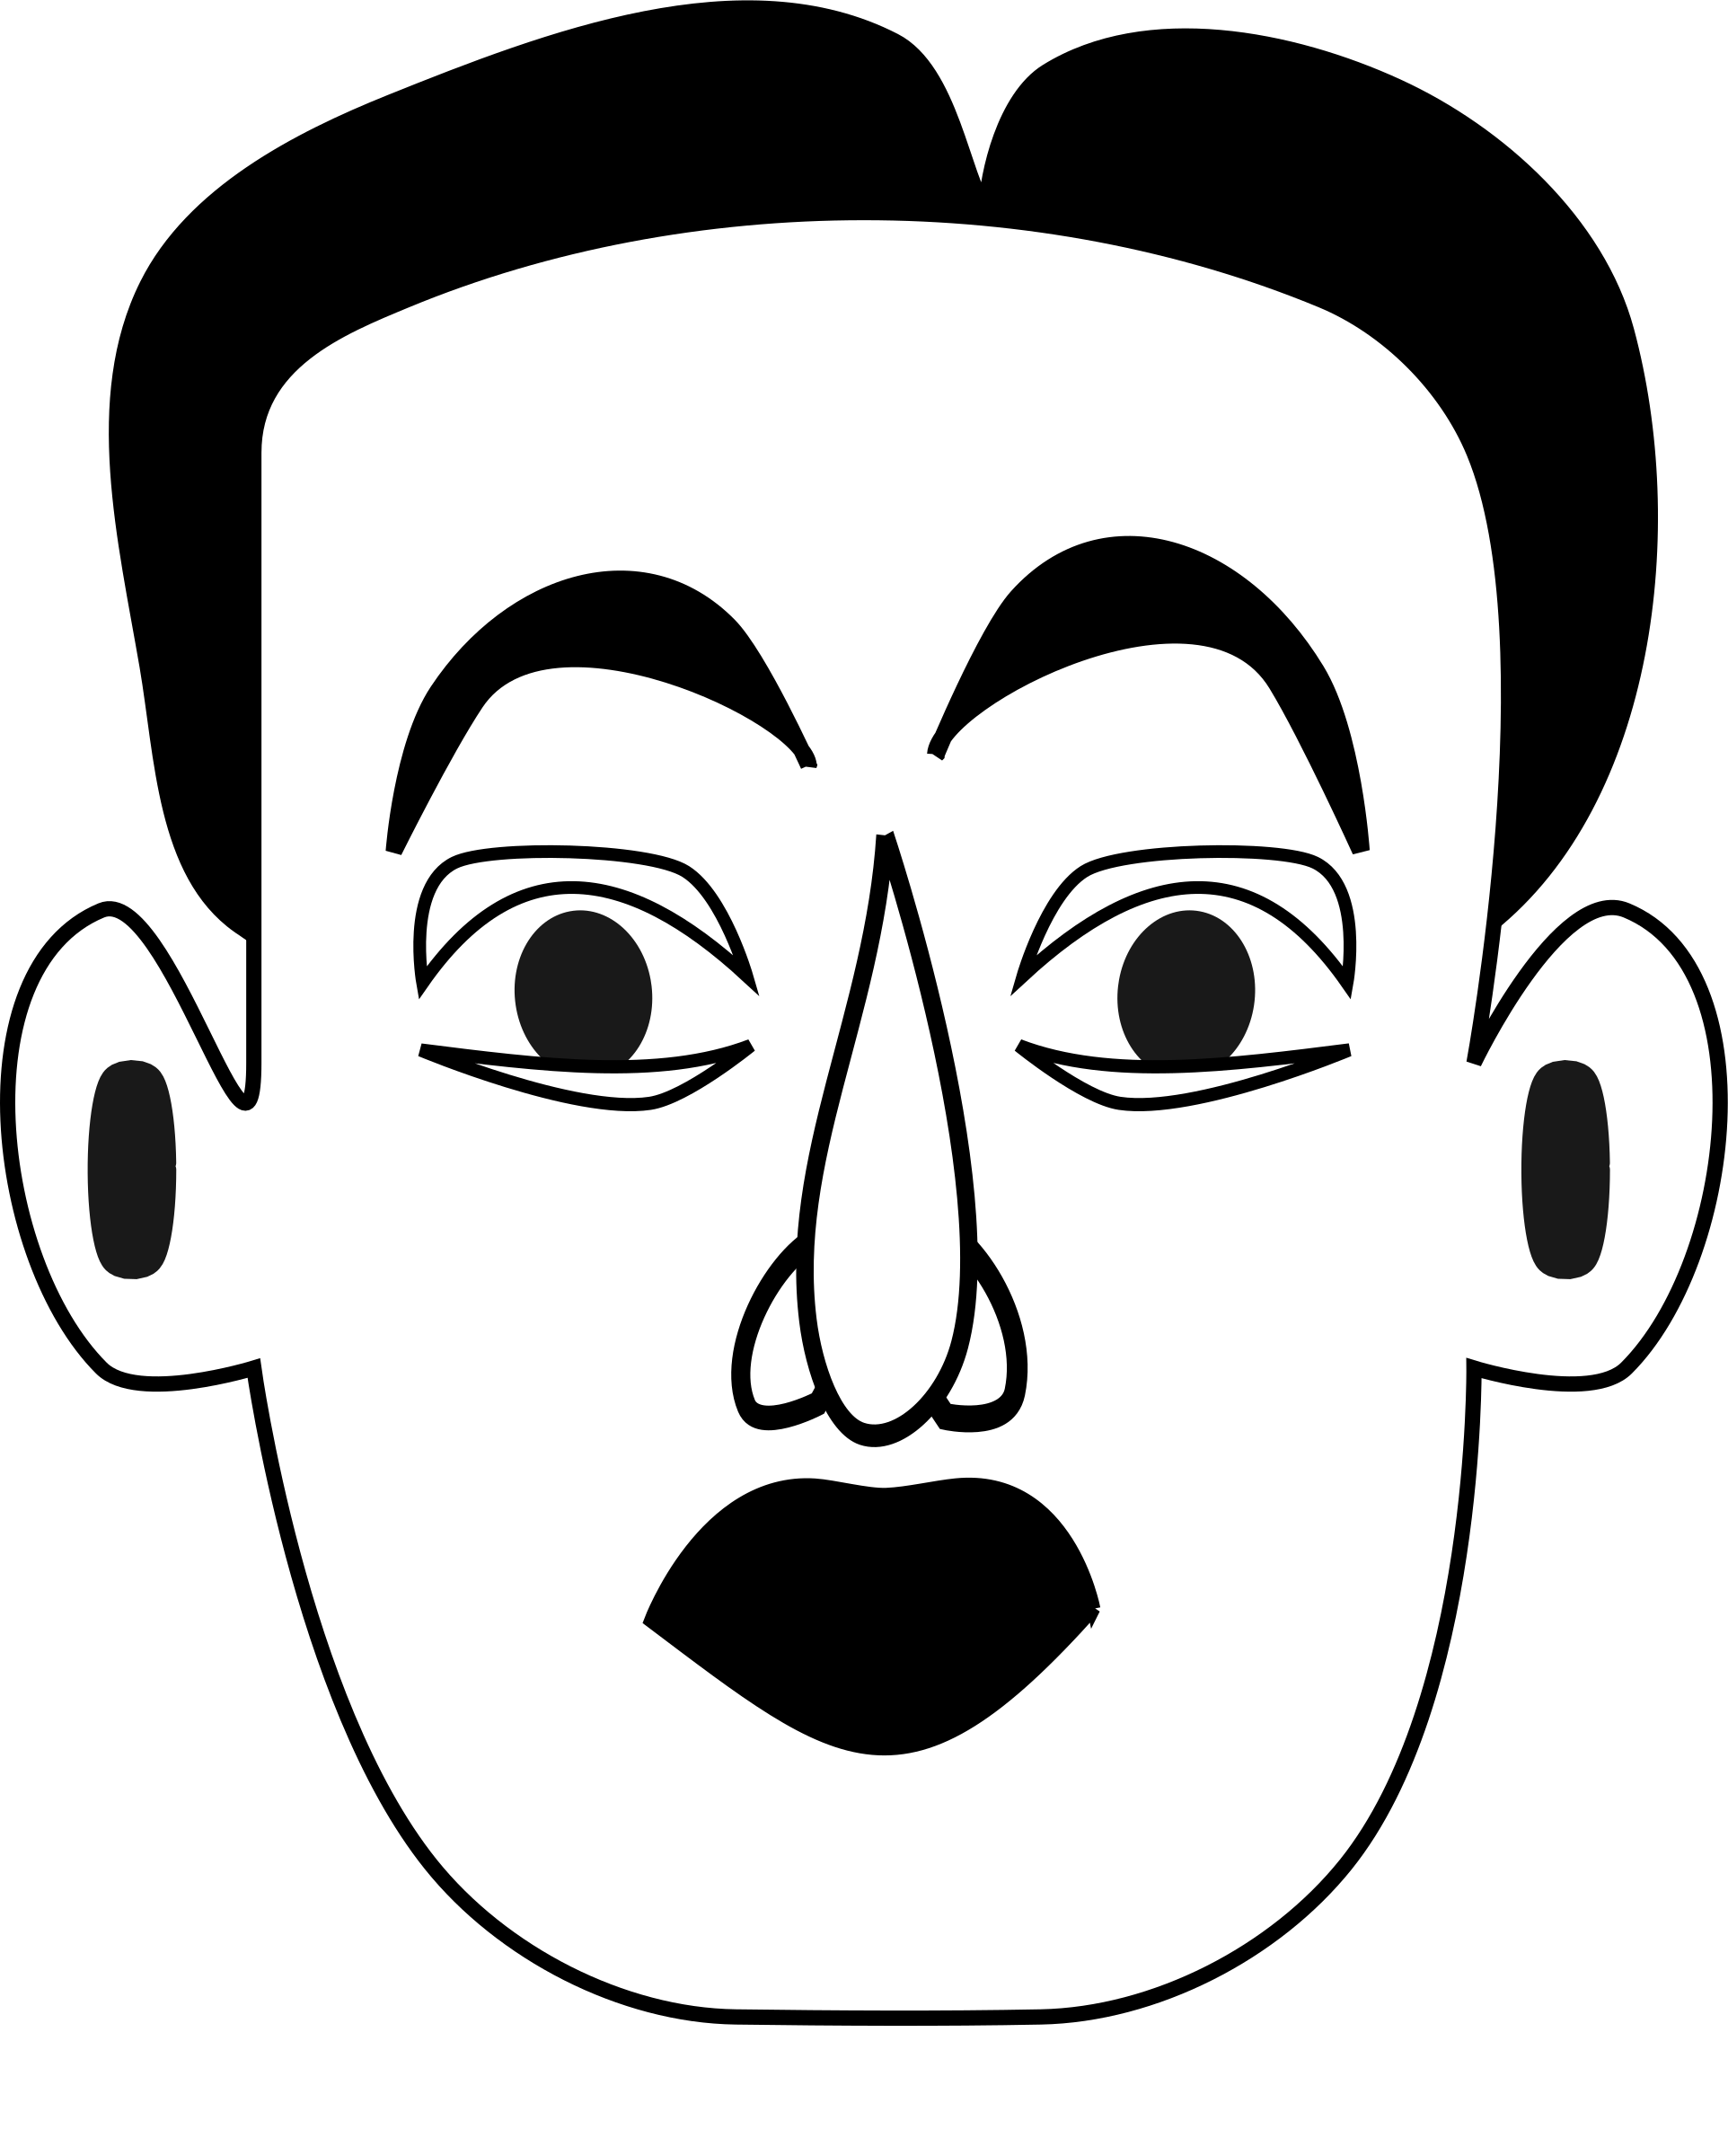 Surprised clipart eyebrow. Emotions big image png